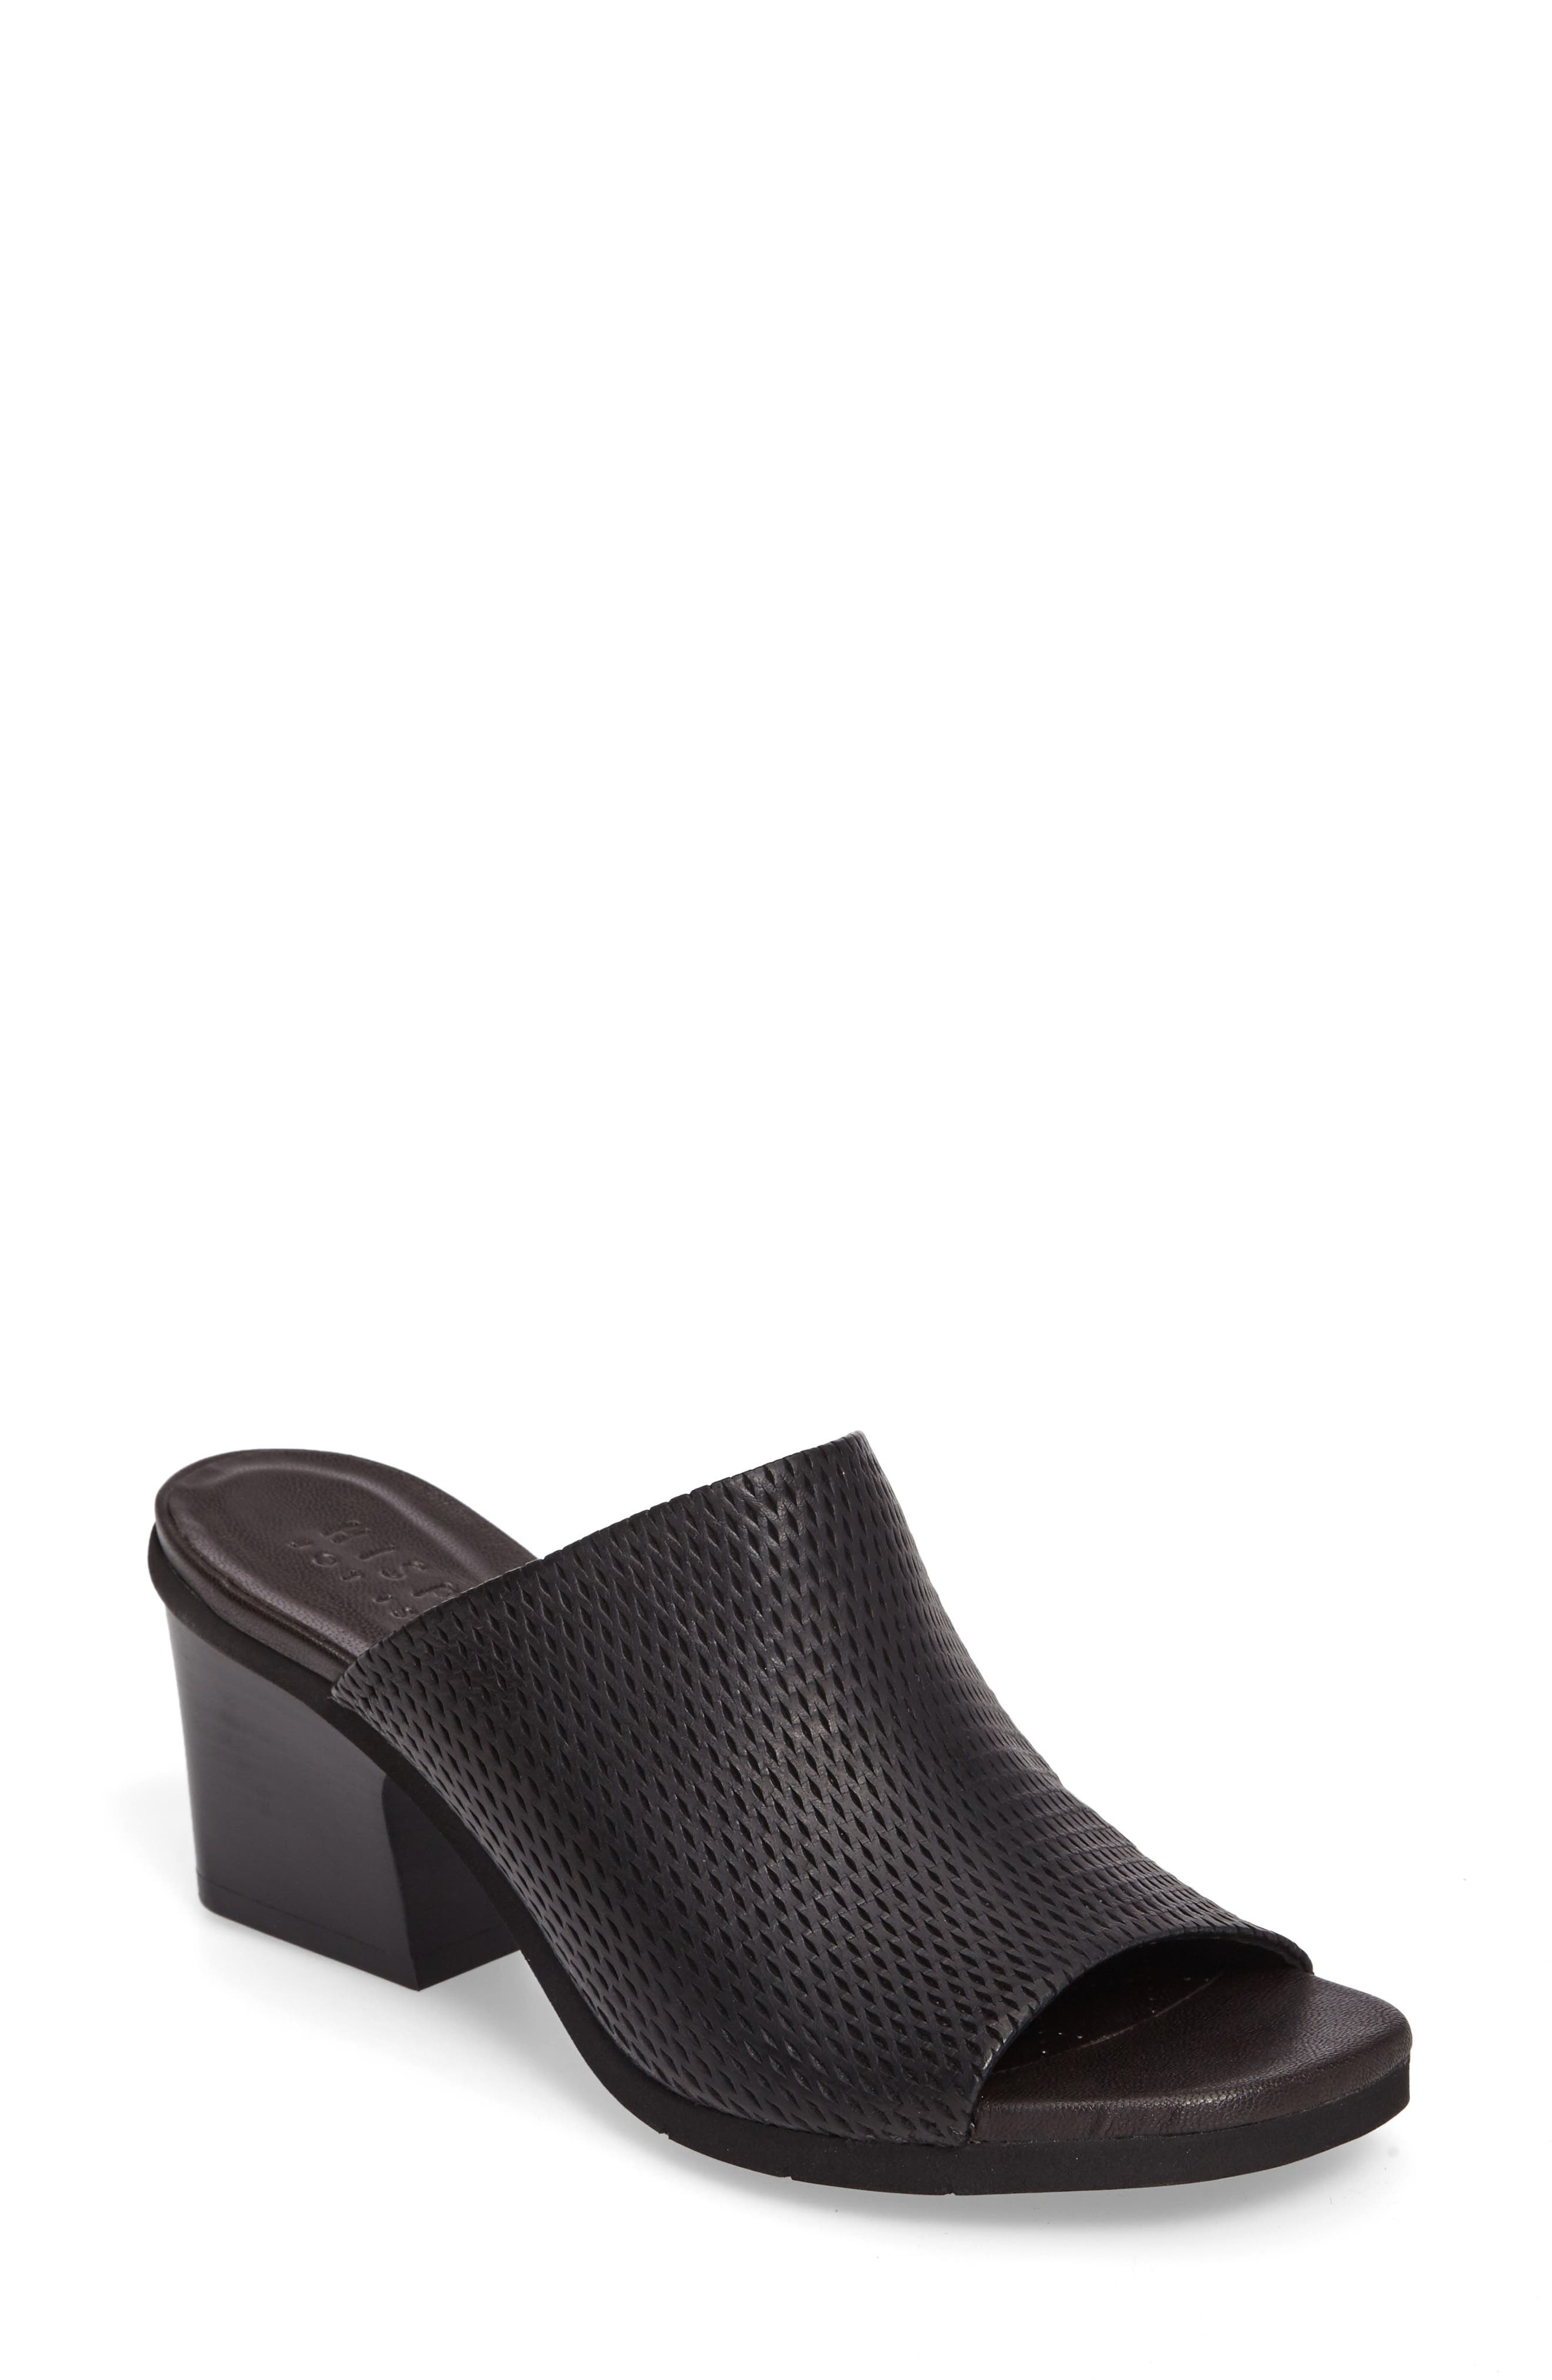 Udora Perforated Mule,                             Main thumbnail 1, color,                             Keops Black Leather